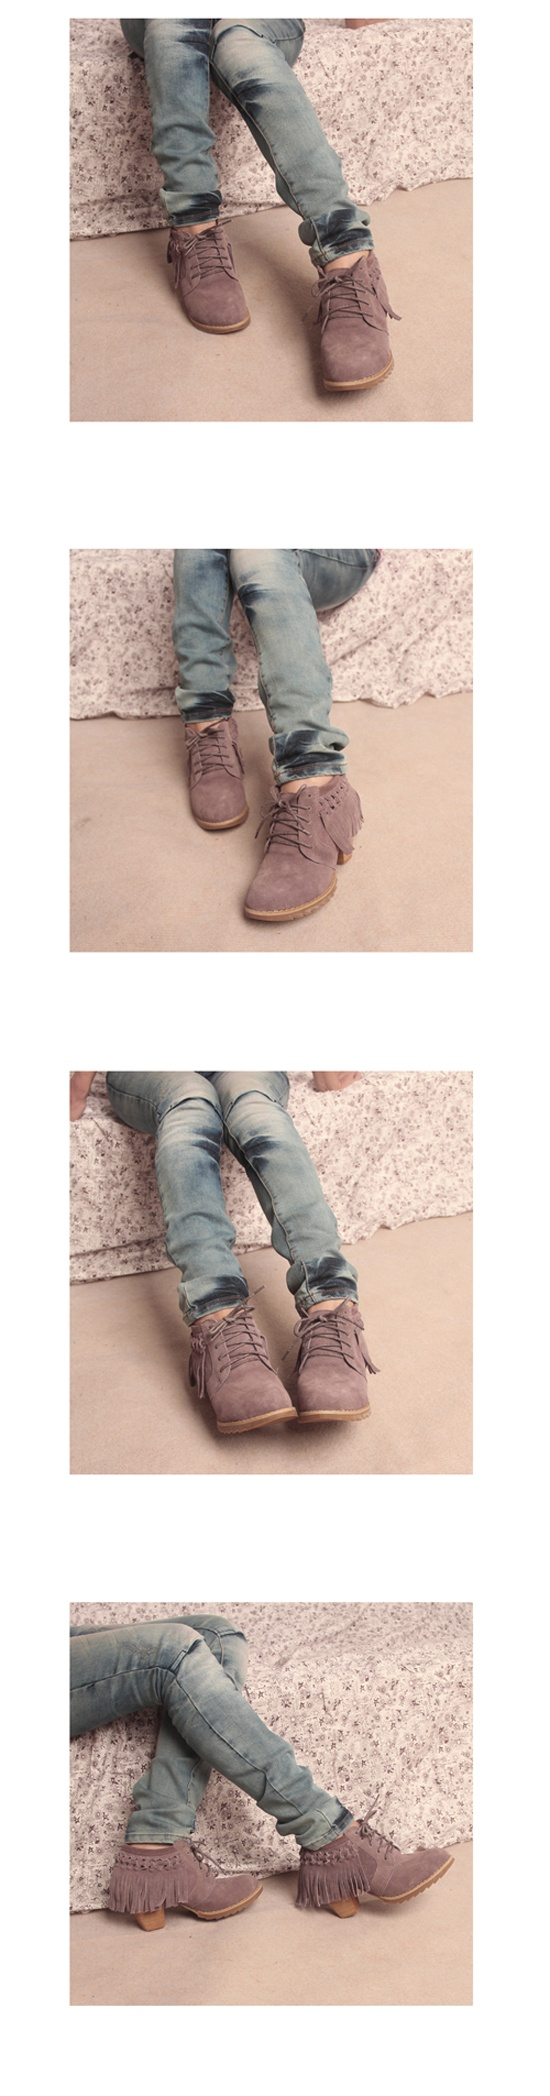 Tassel Khaki Junior Casual Shoes <3Junior Casual, Shoes Fetish, Shoes Unlimited, Khakis Junior, Casual Shoes, Tassels Khakis, Happy Feet ツ, Korean Fashion